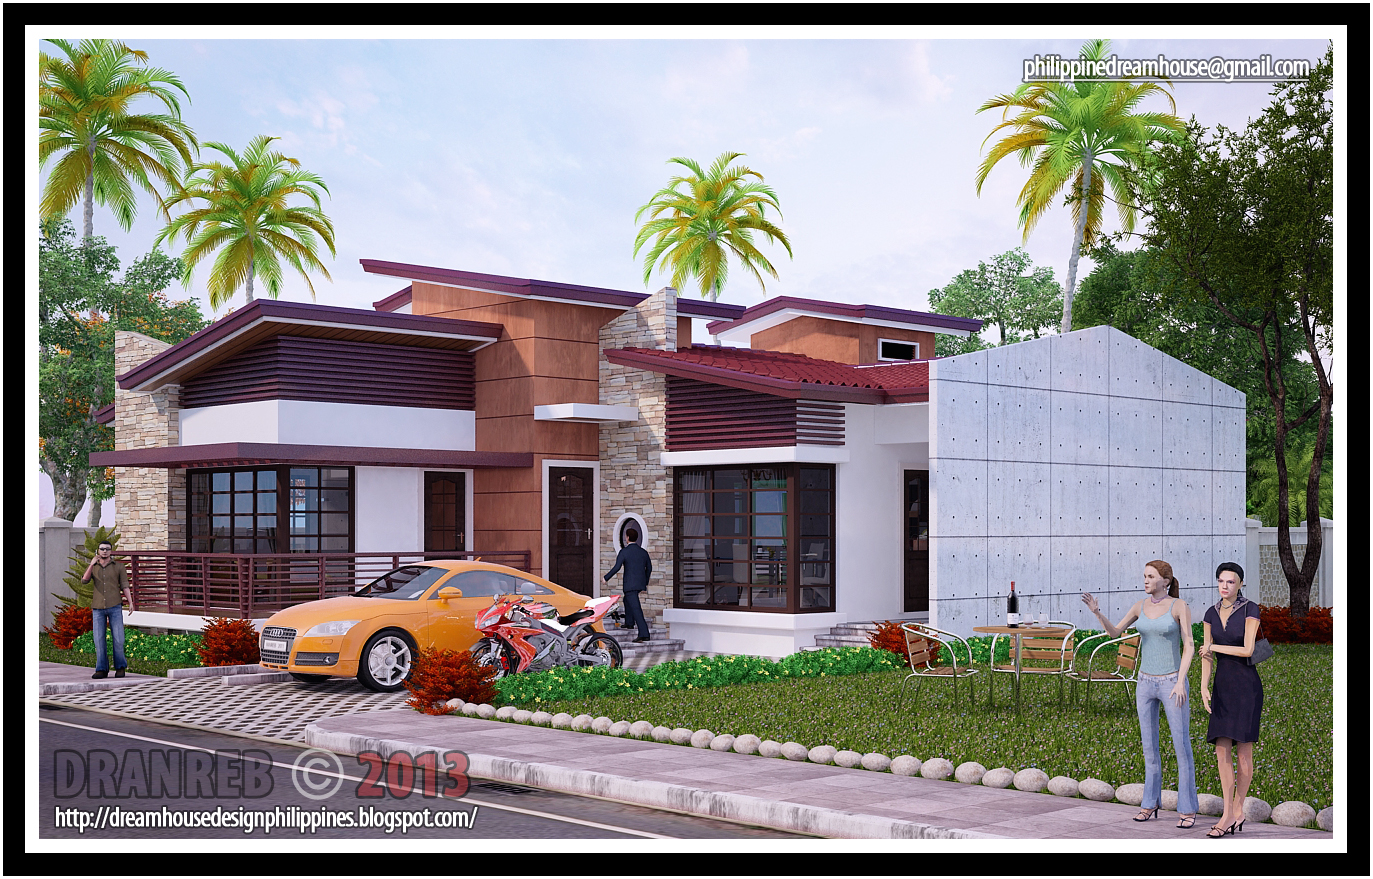 Philippine Dream House Design Three Bedrooms Residential House